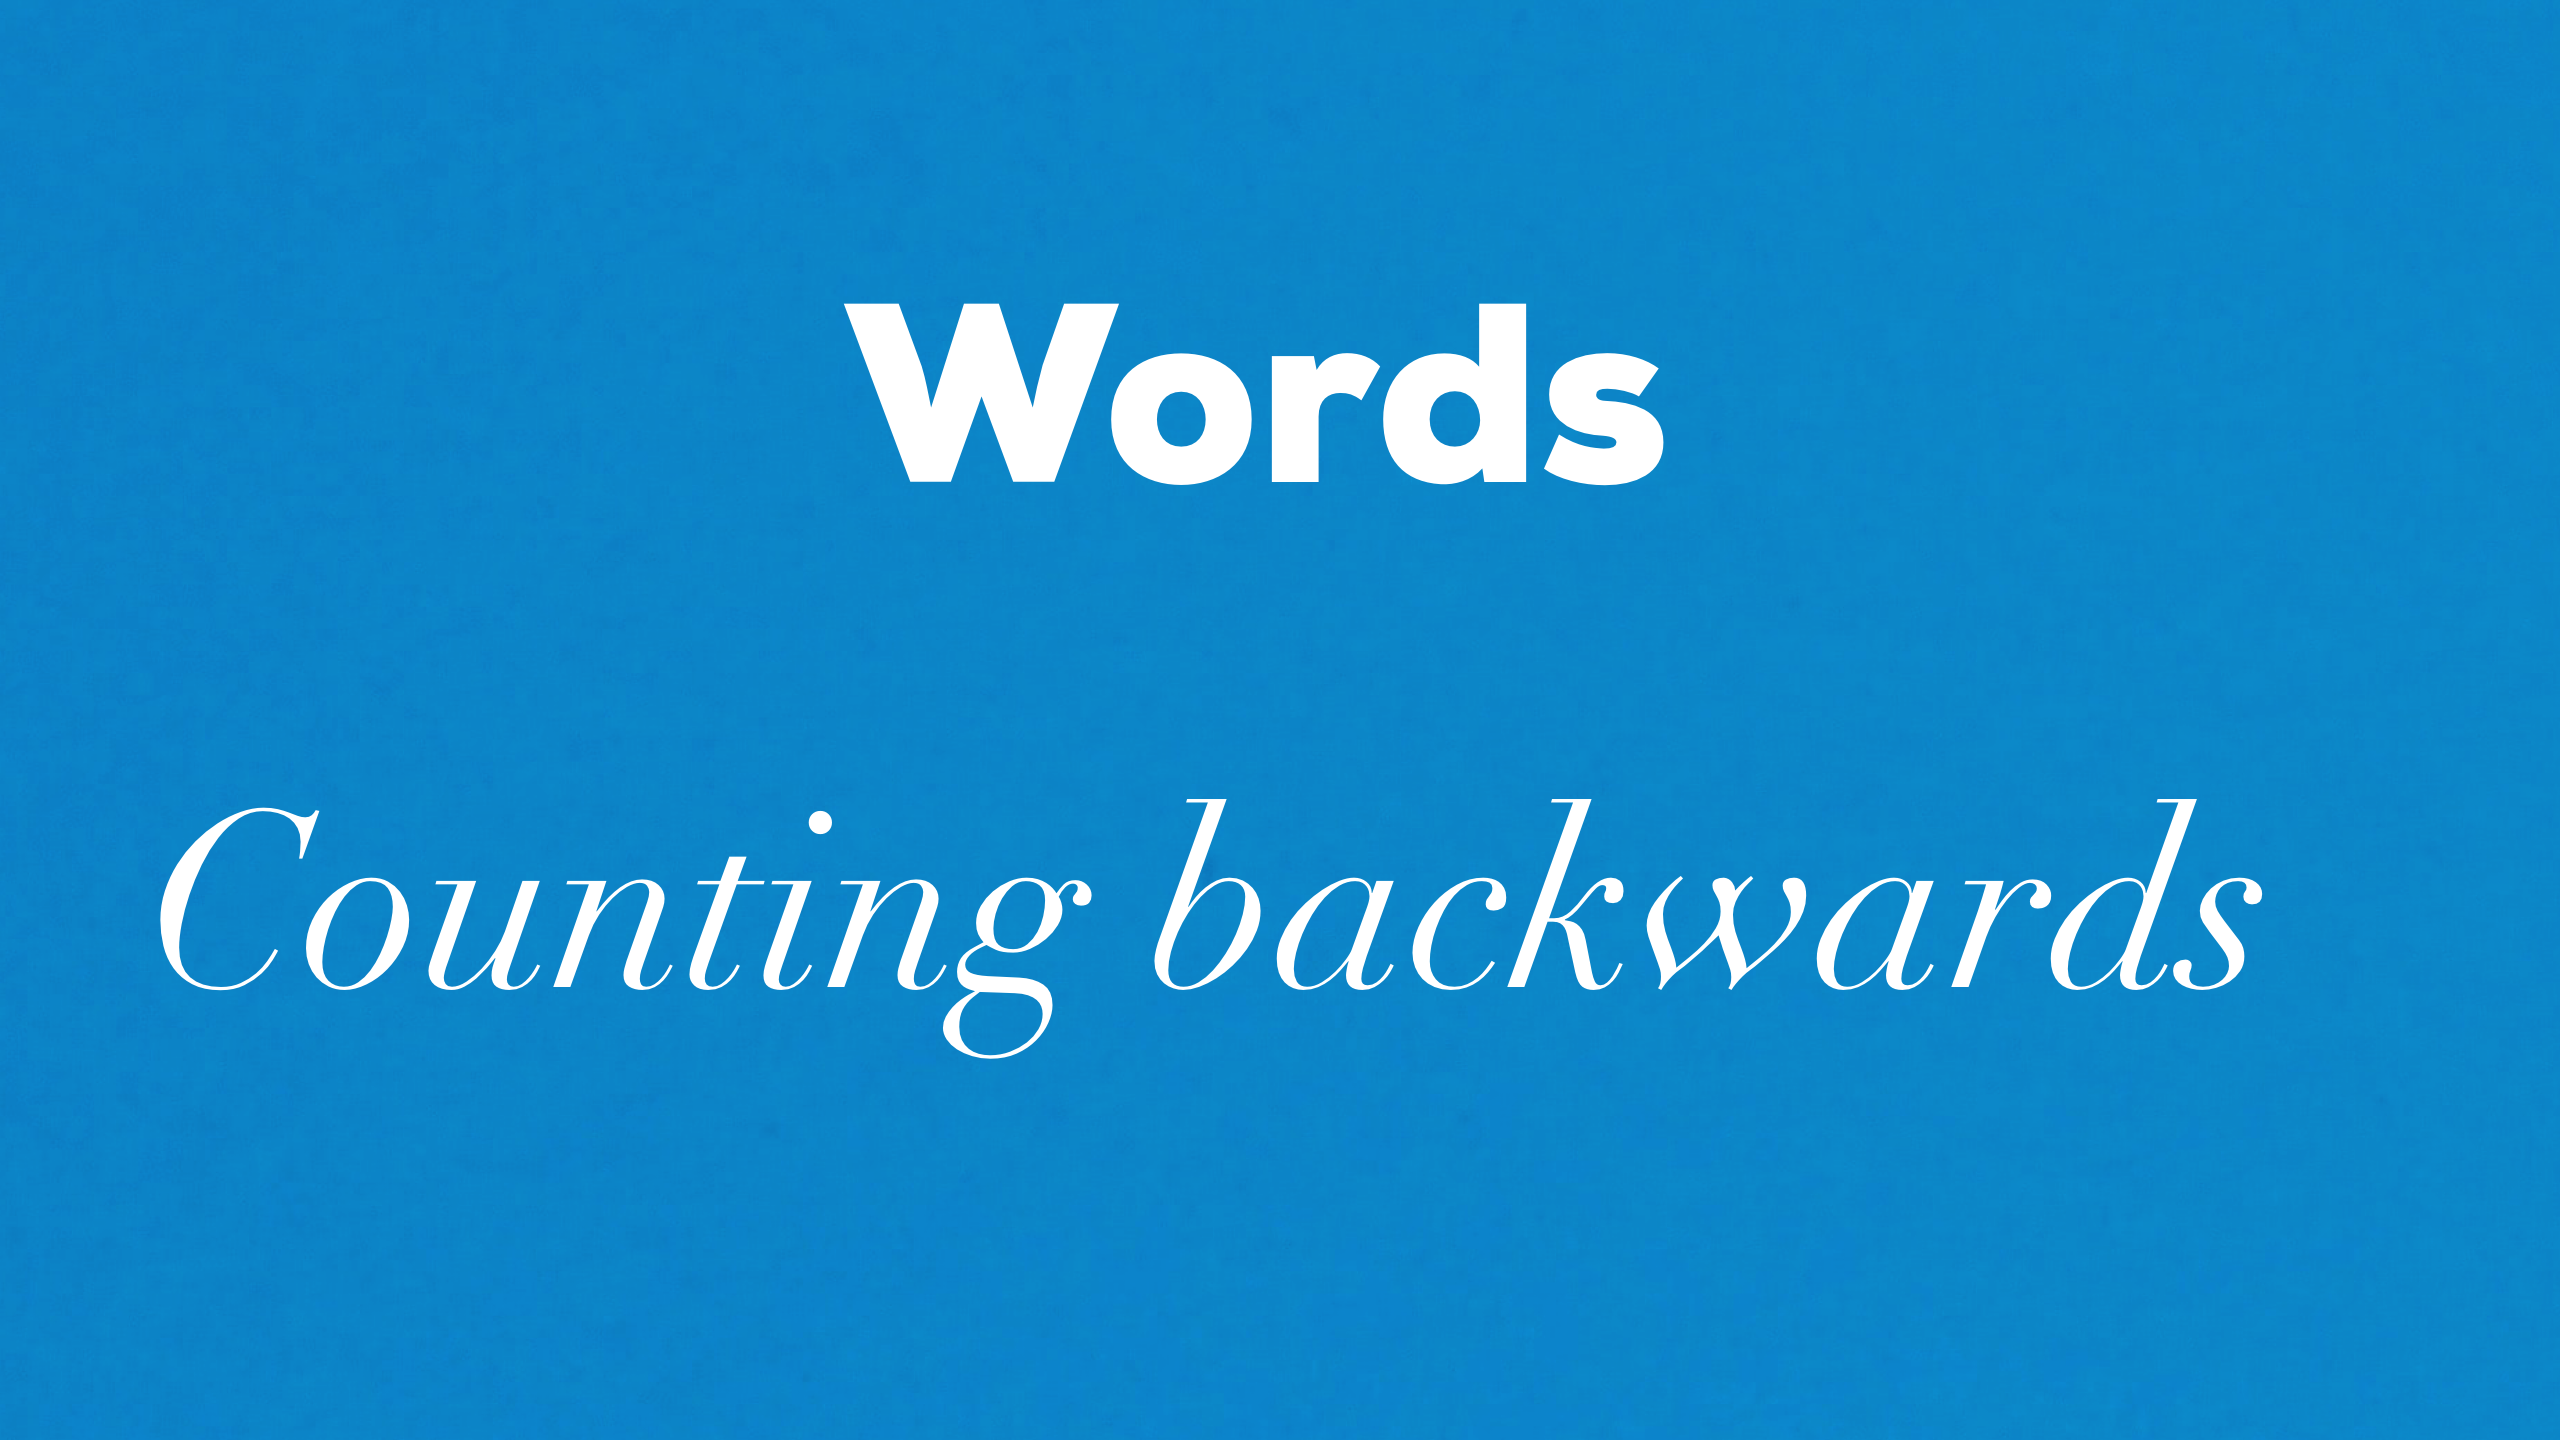 Words Counting backwards